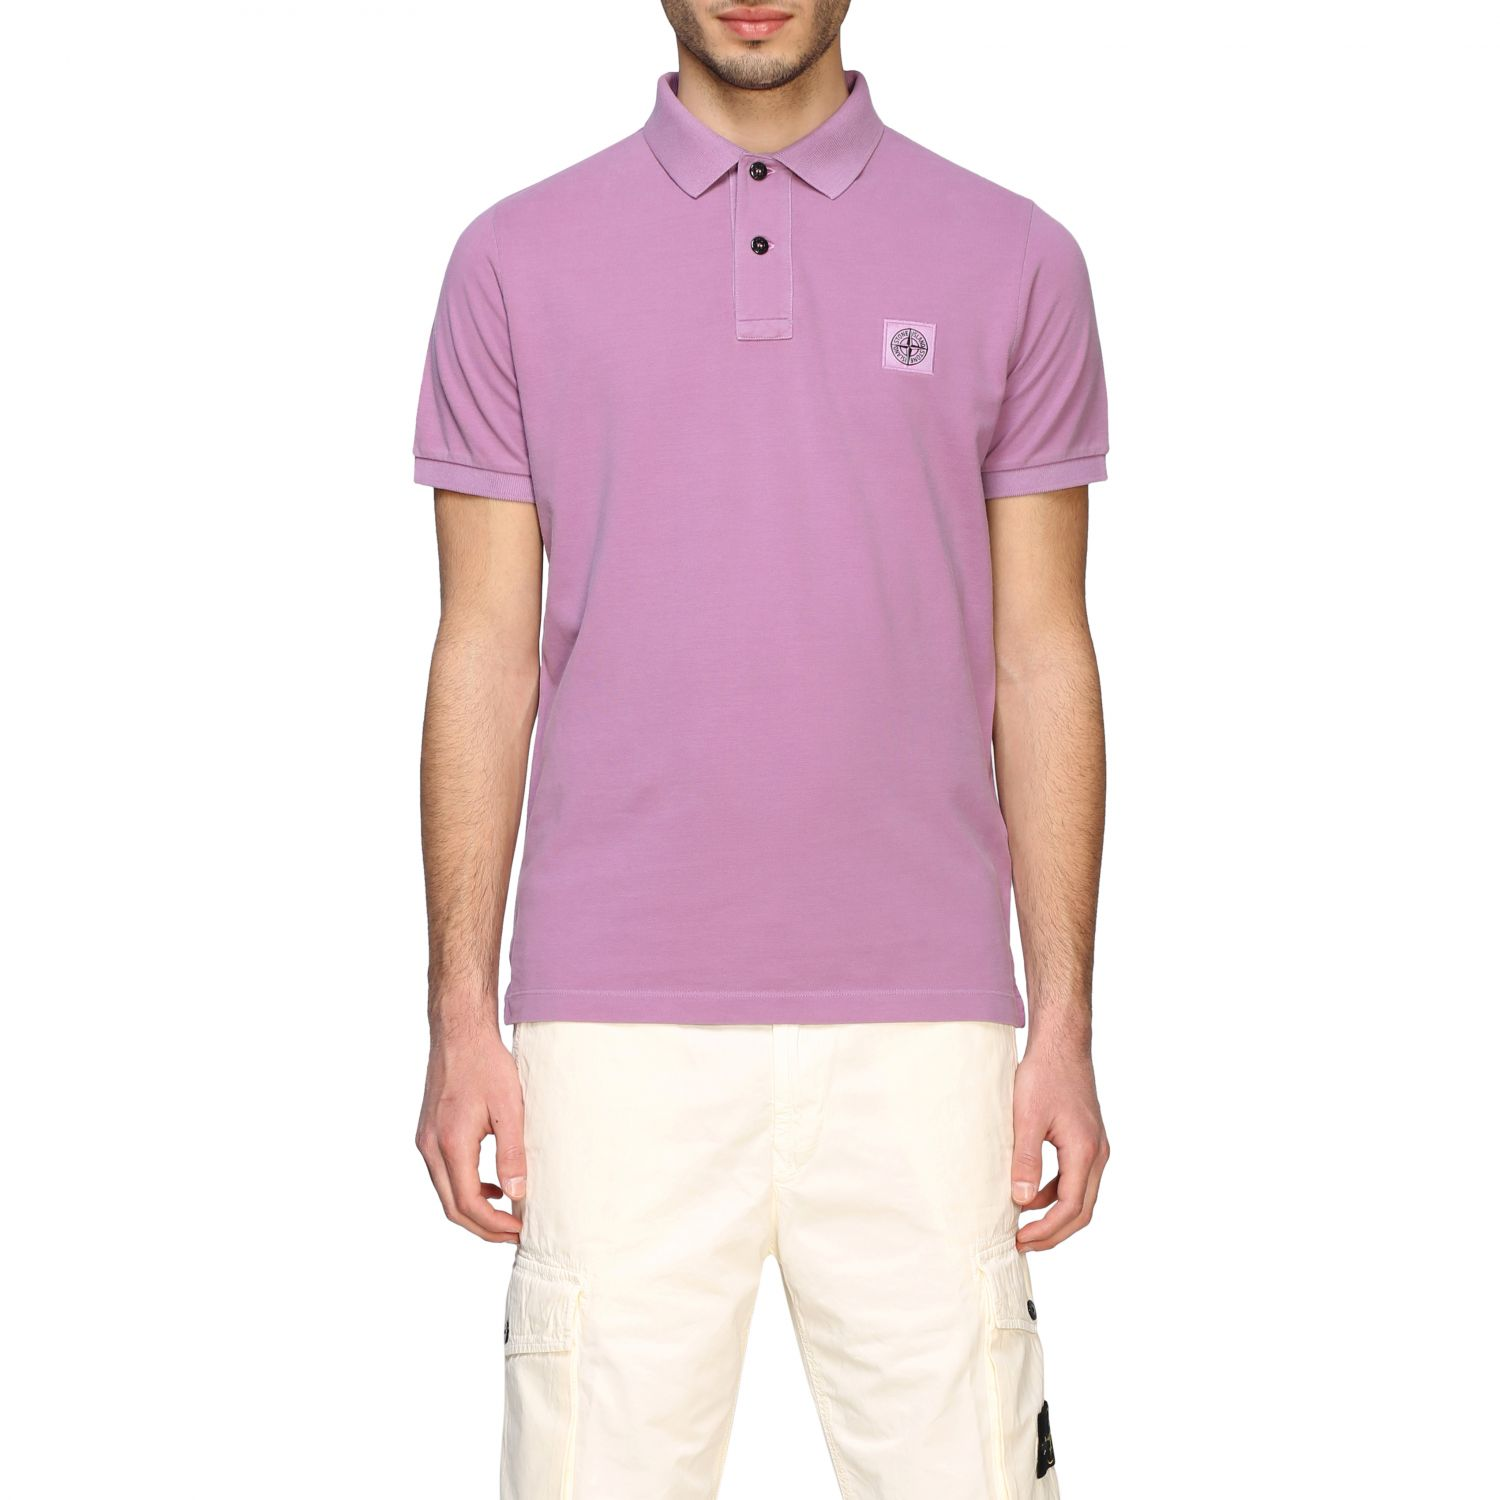 Stone Island short-sleeved polo shirt pink 1